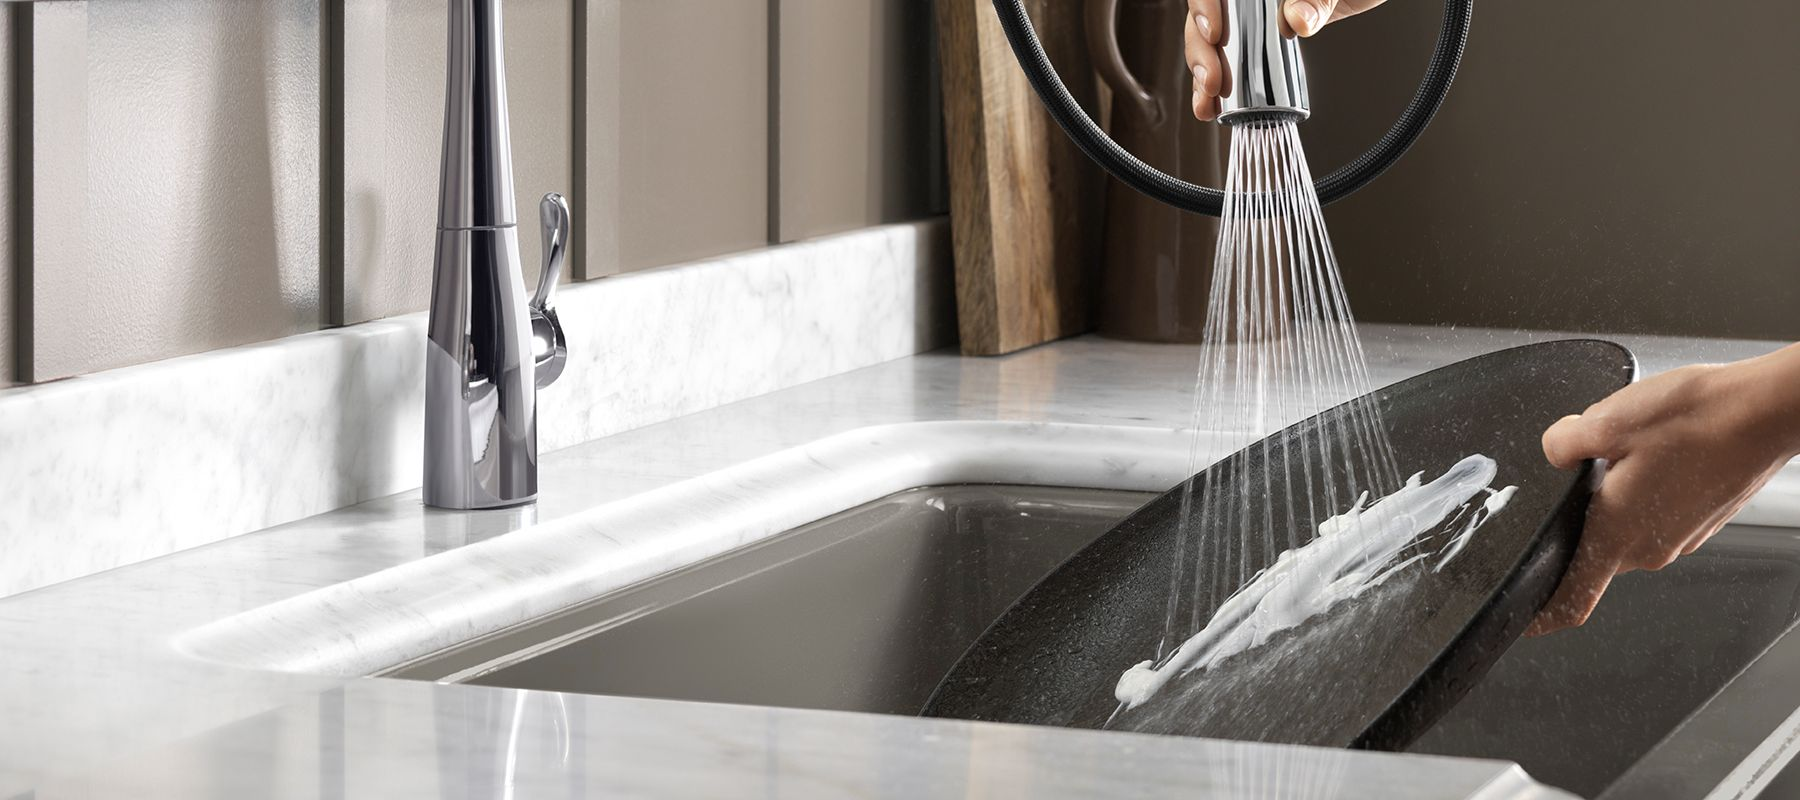 Sweep Shop all Kitchen Faucets | Kohler.com | KOHLER